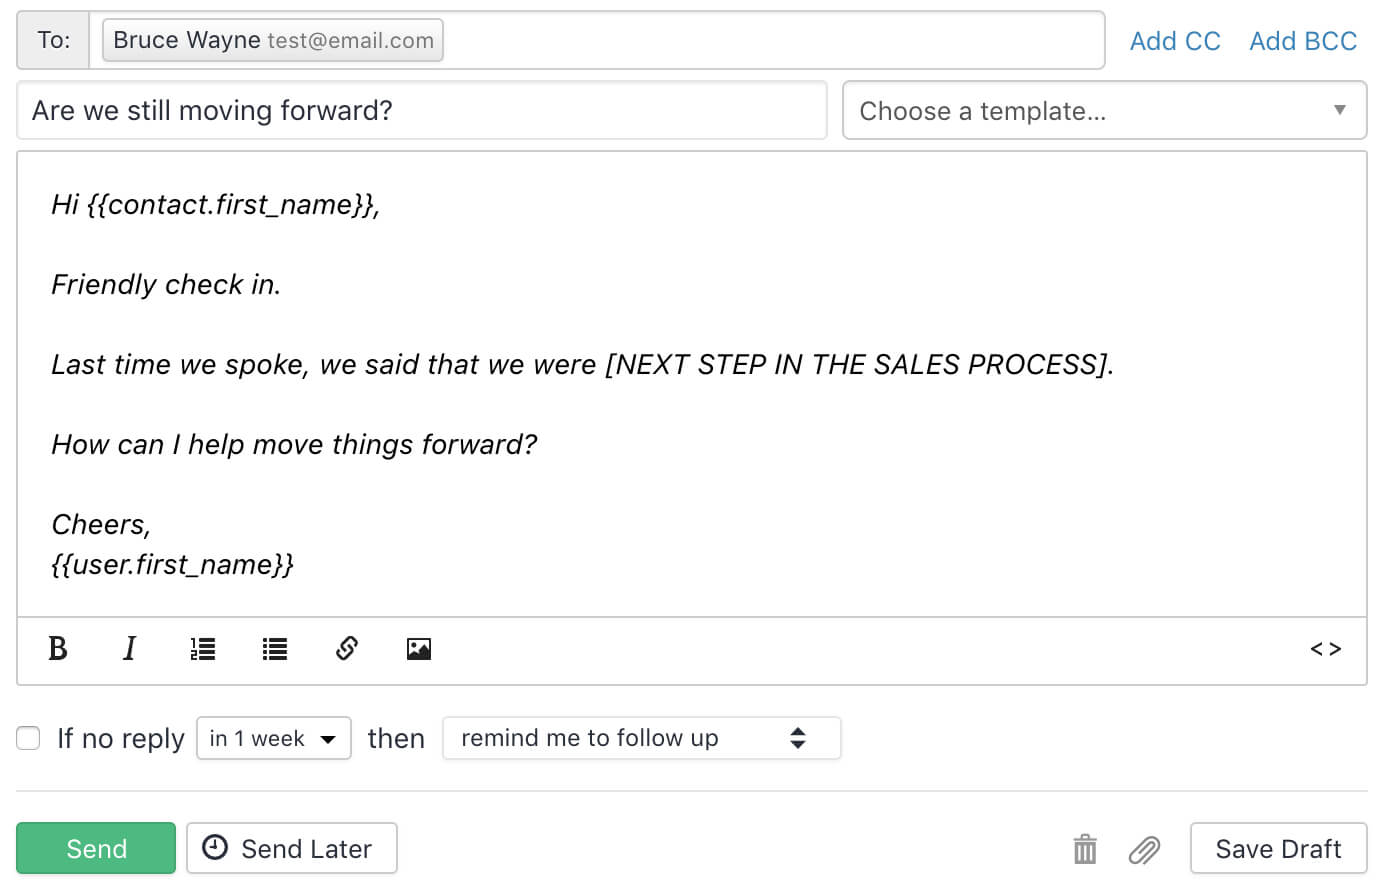 crm-ready-sales-email-template-follow-up-again